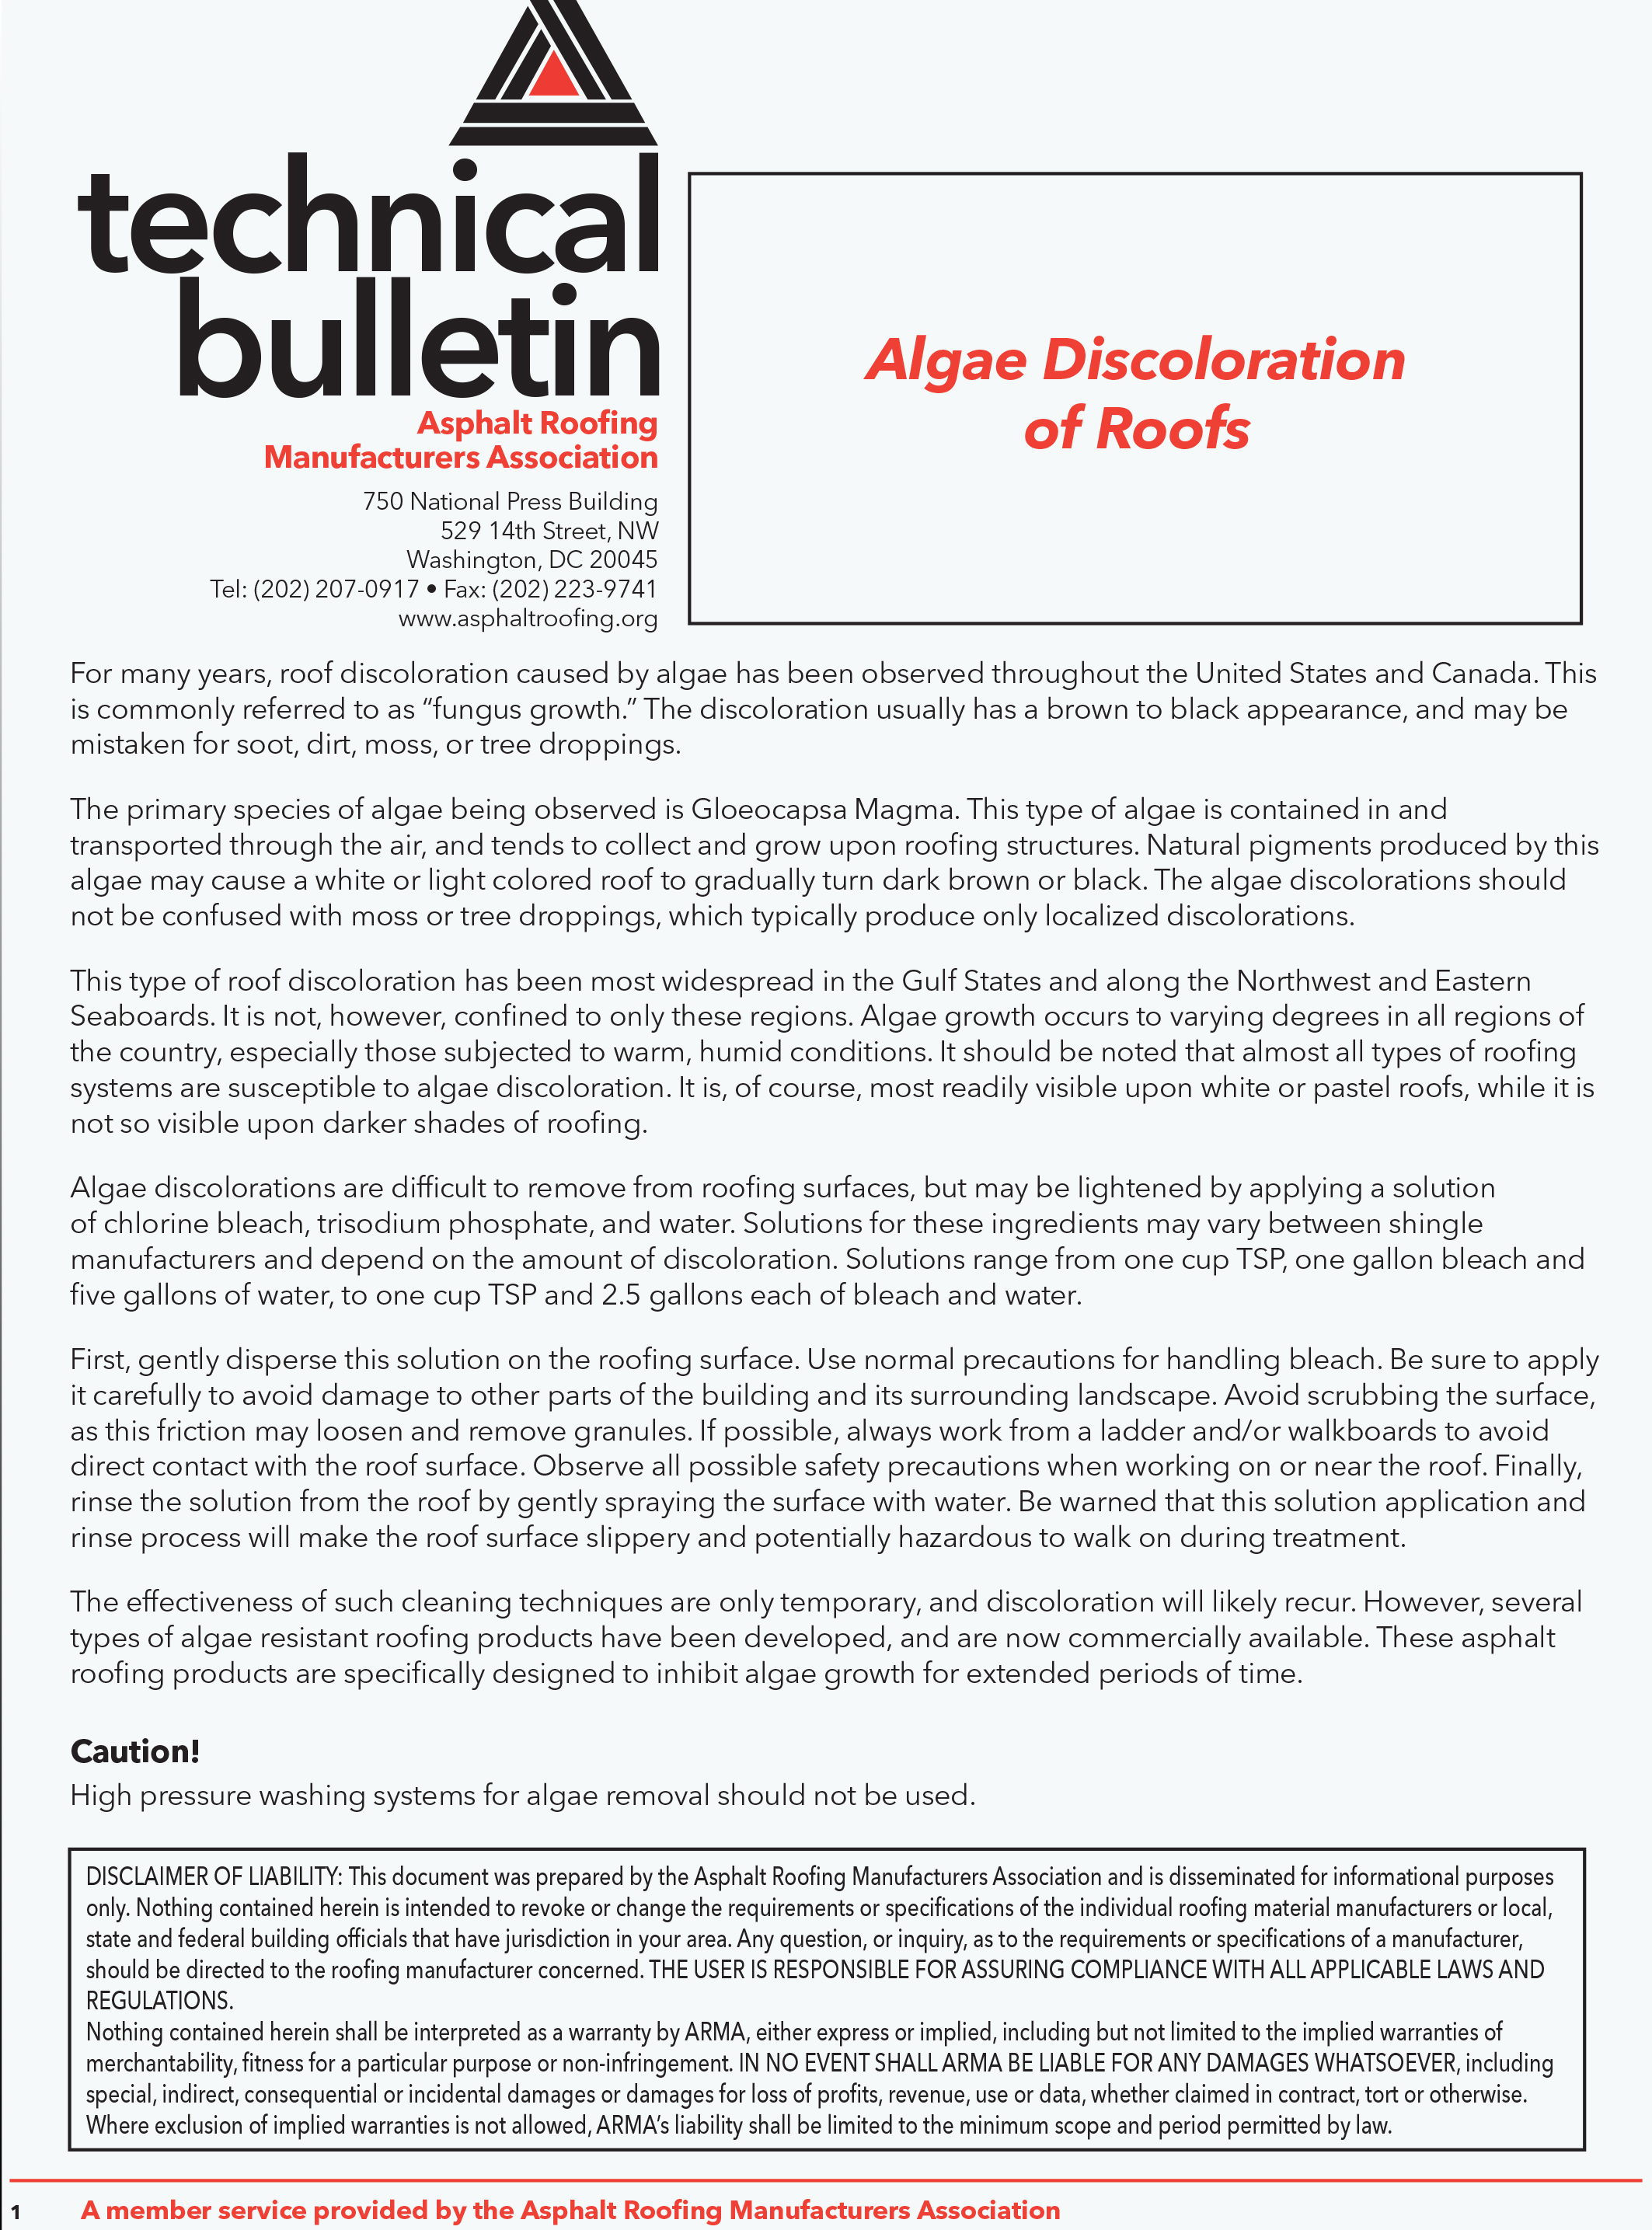 Algae-Discoloration-of-Roofs---ARMA-Technical-Bulletin